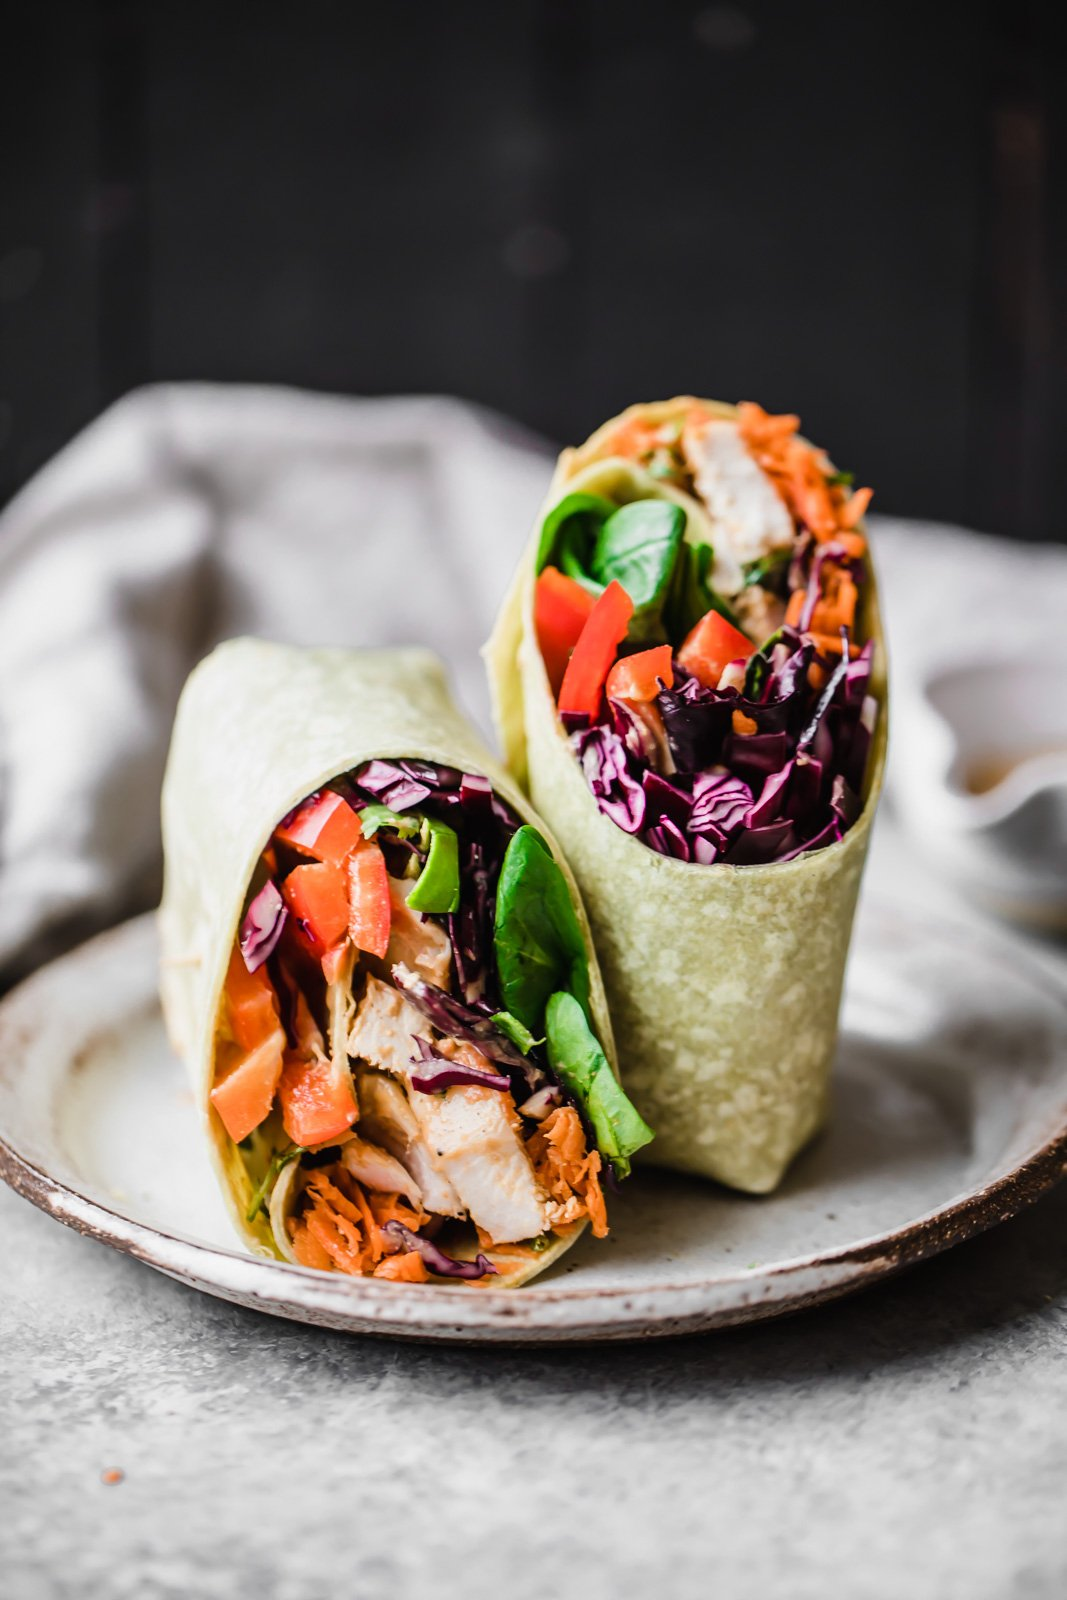 Thai peanut chicken wraps on a plate